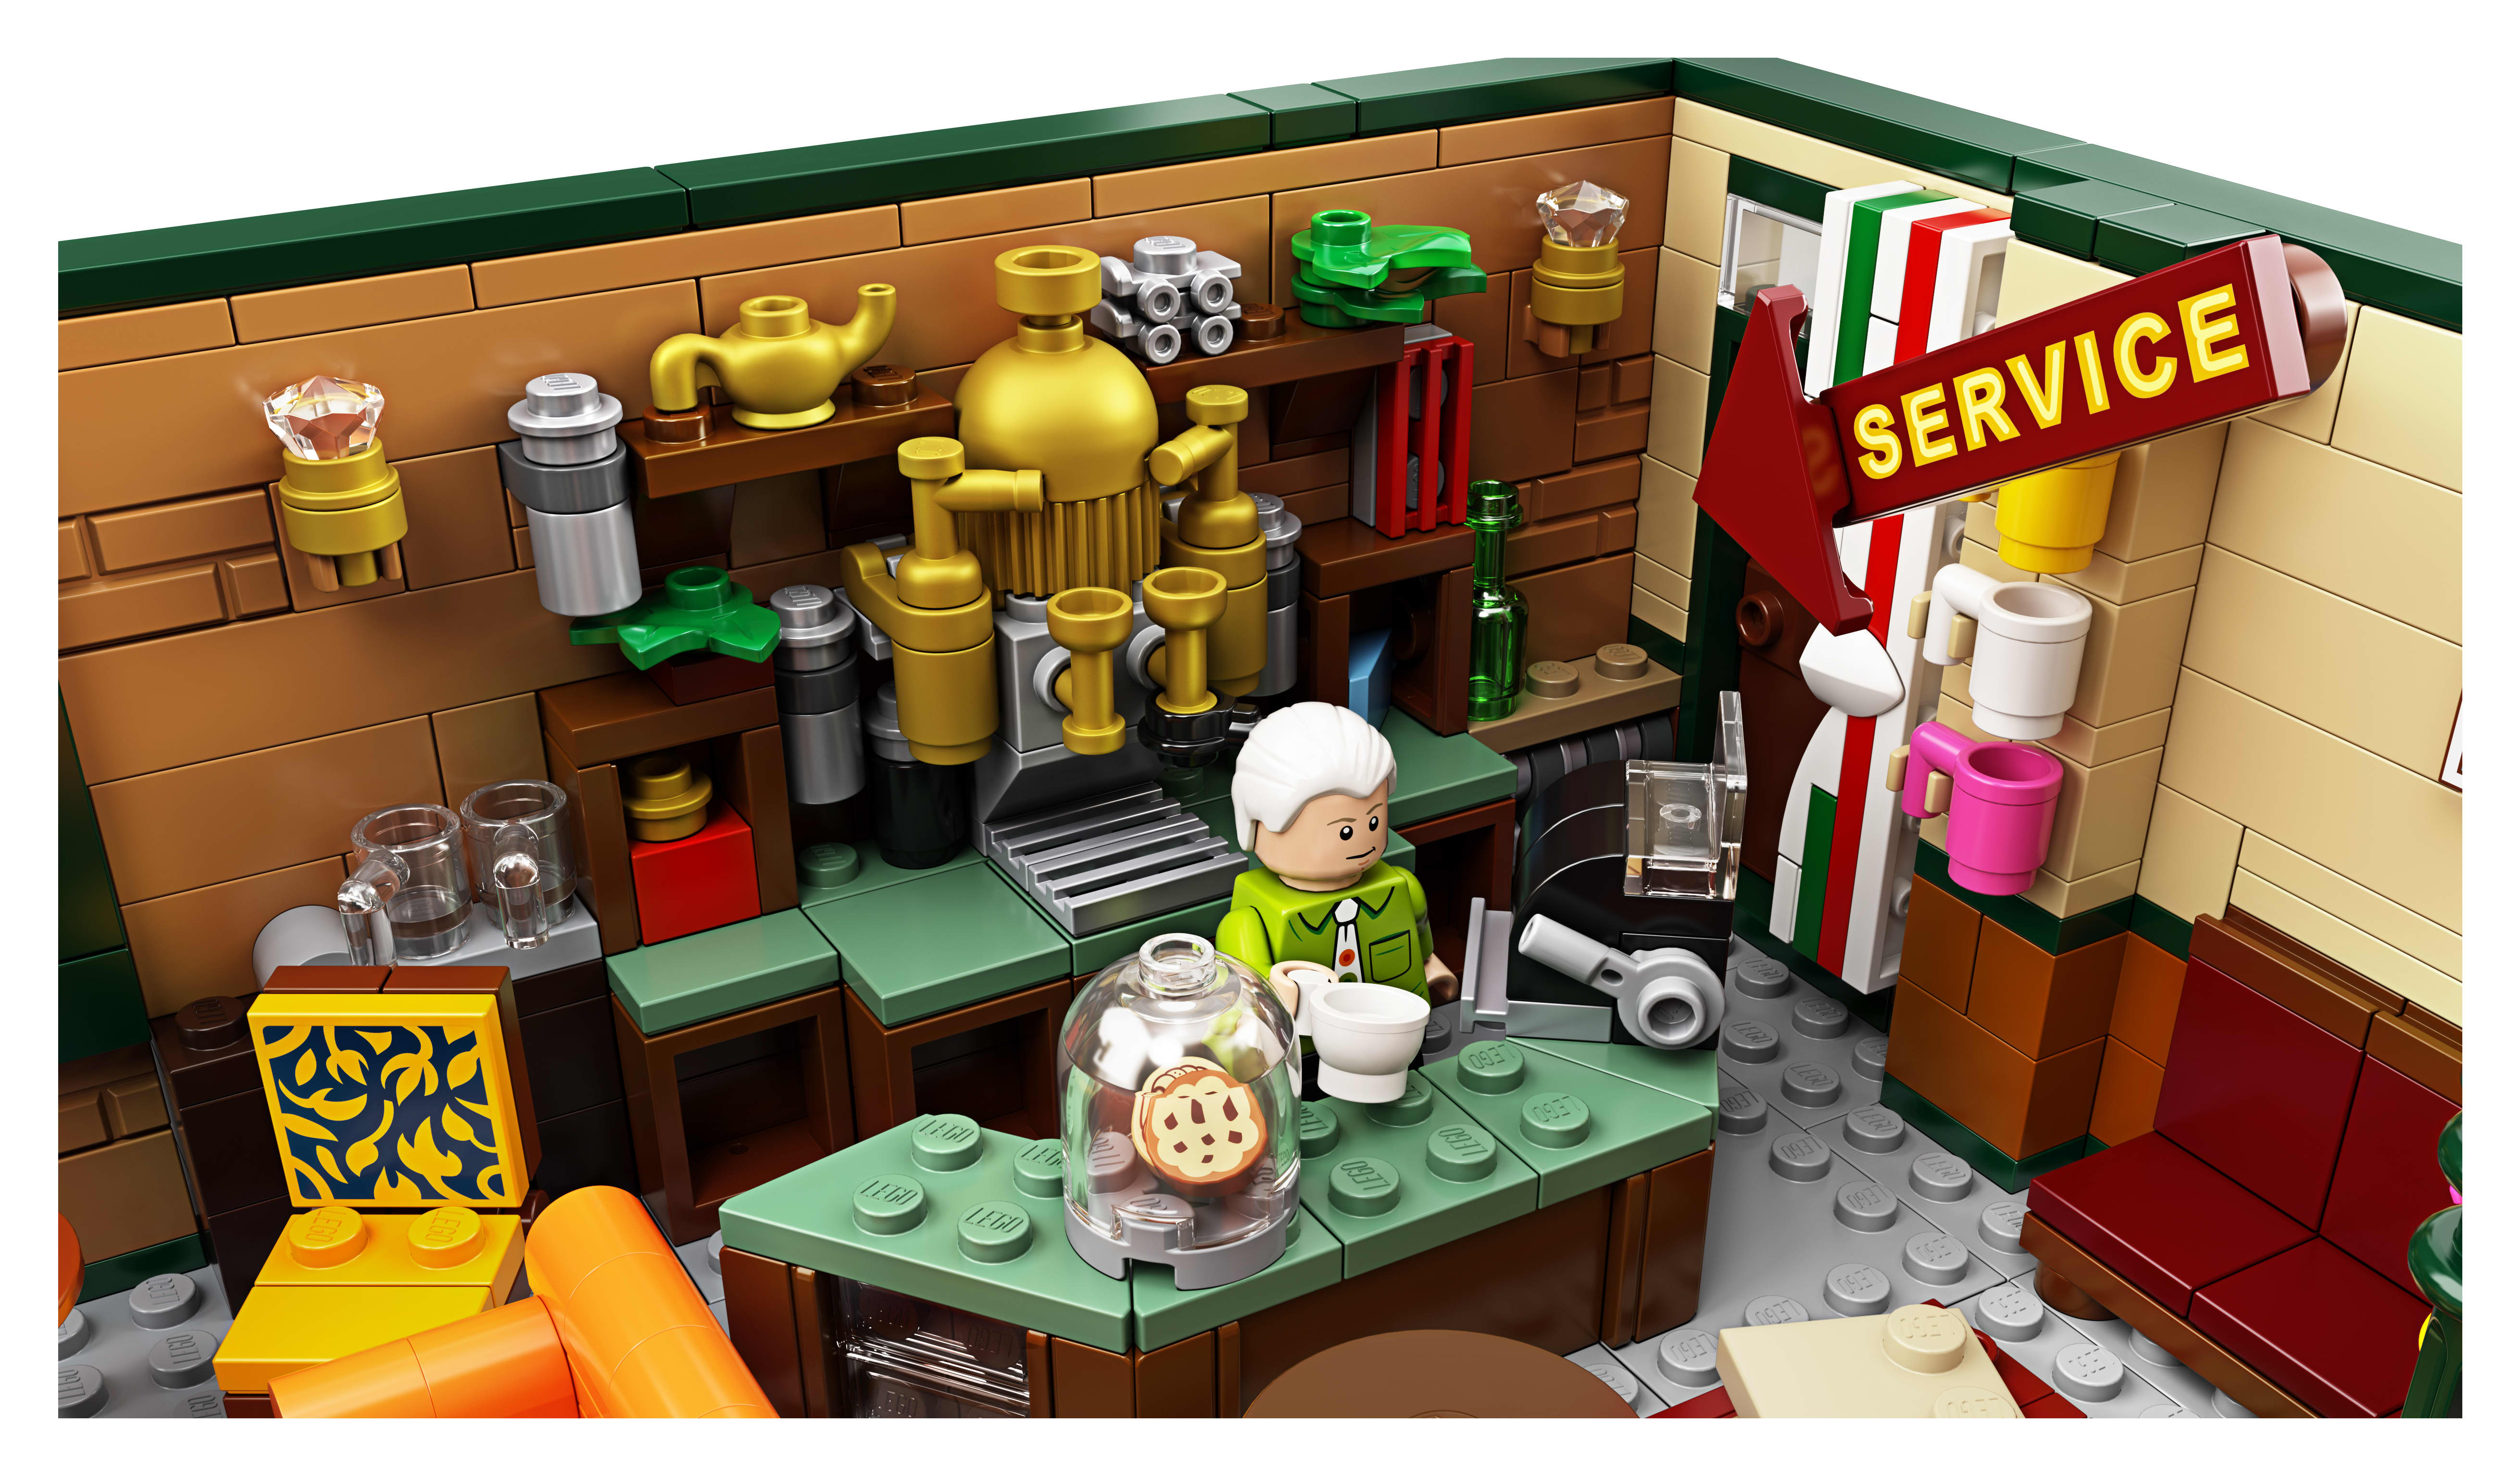 Friends Central Perk LEGO Set | Apartment Therapy